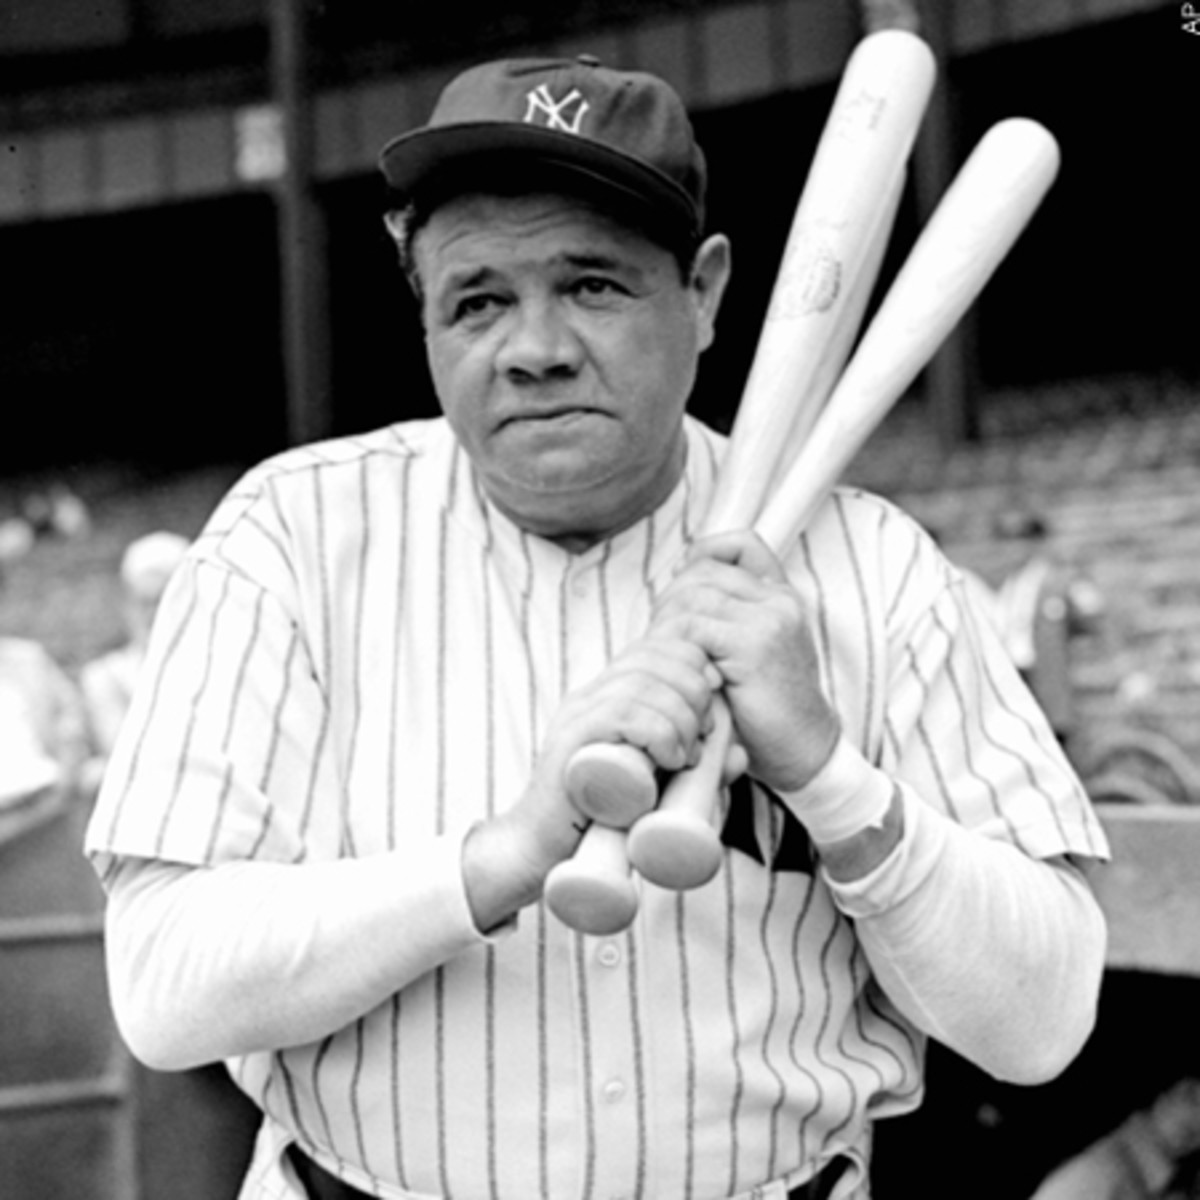 Babe Ruth in the latter stages of his career